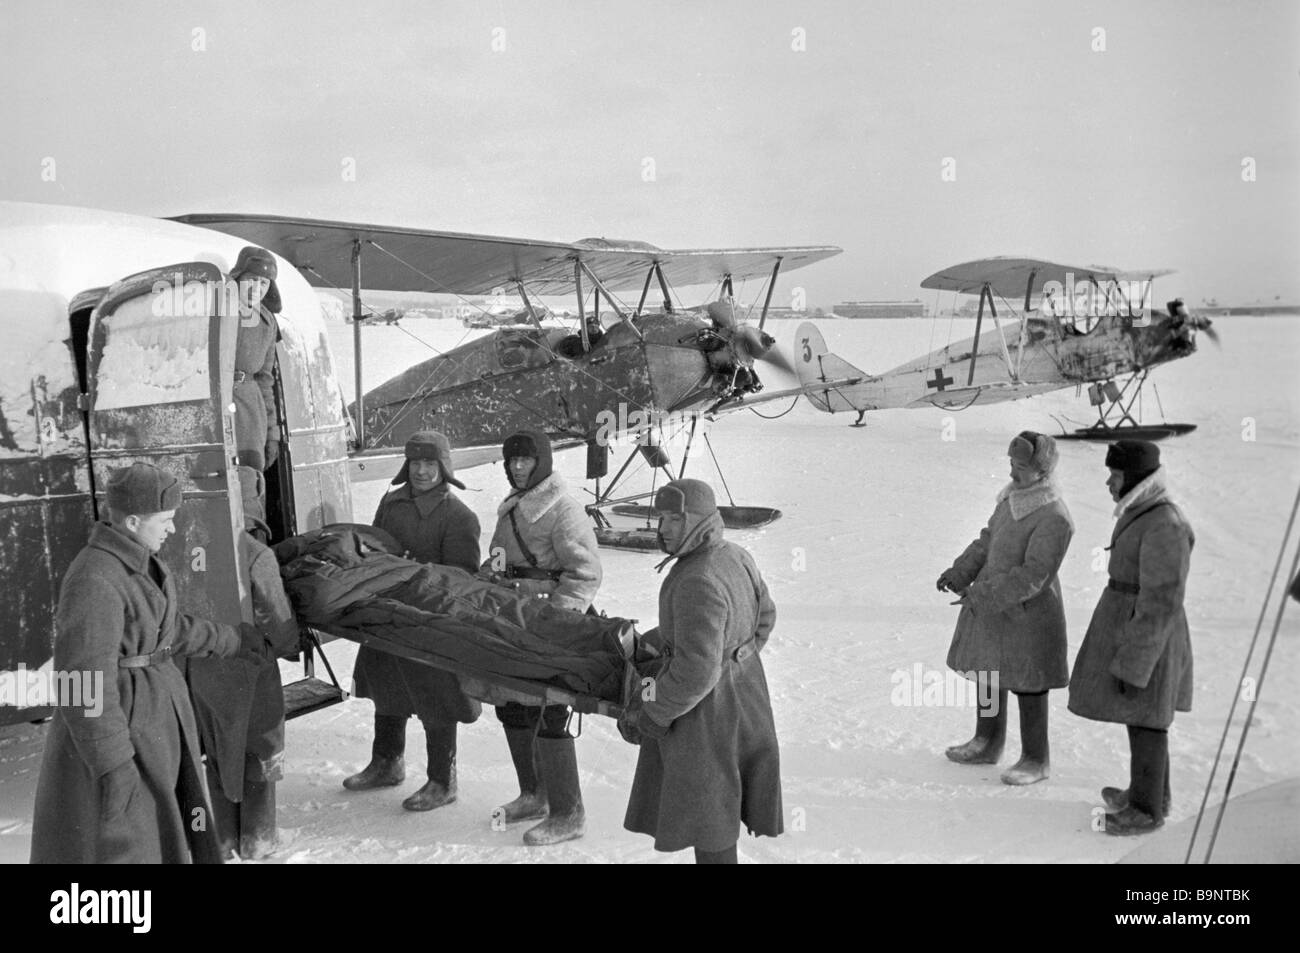 The aero medical service evacuating a wounded soldier - Stock Image